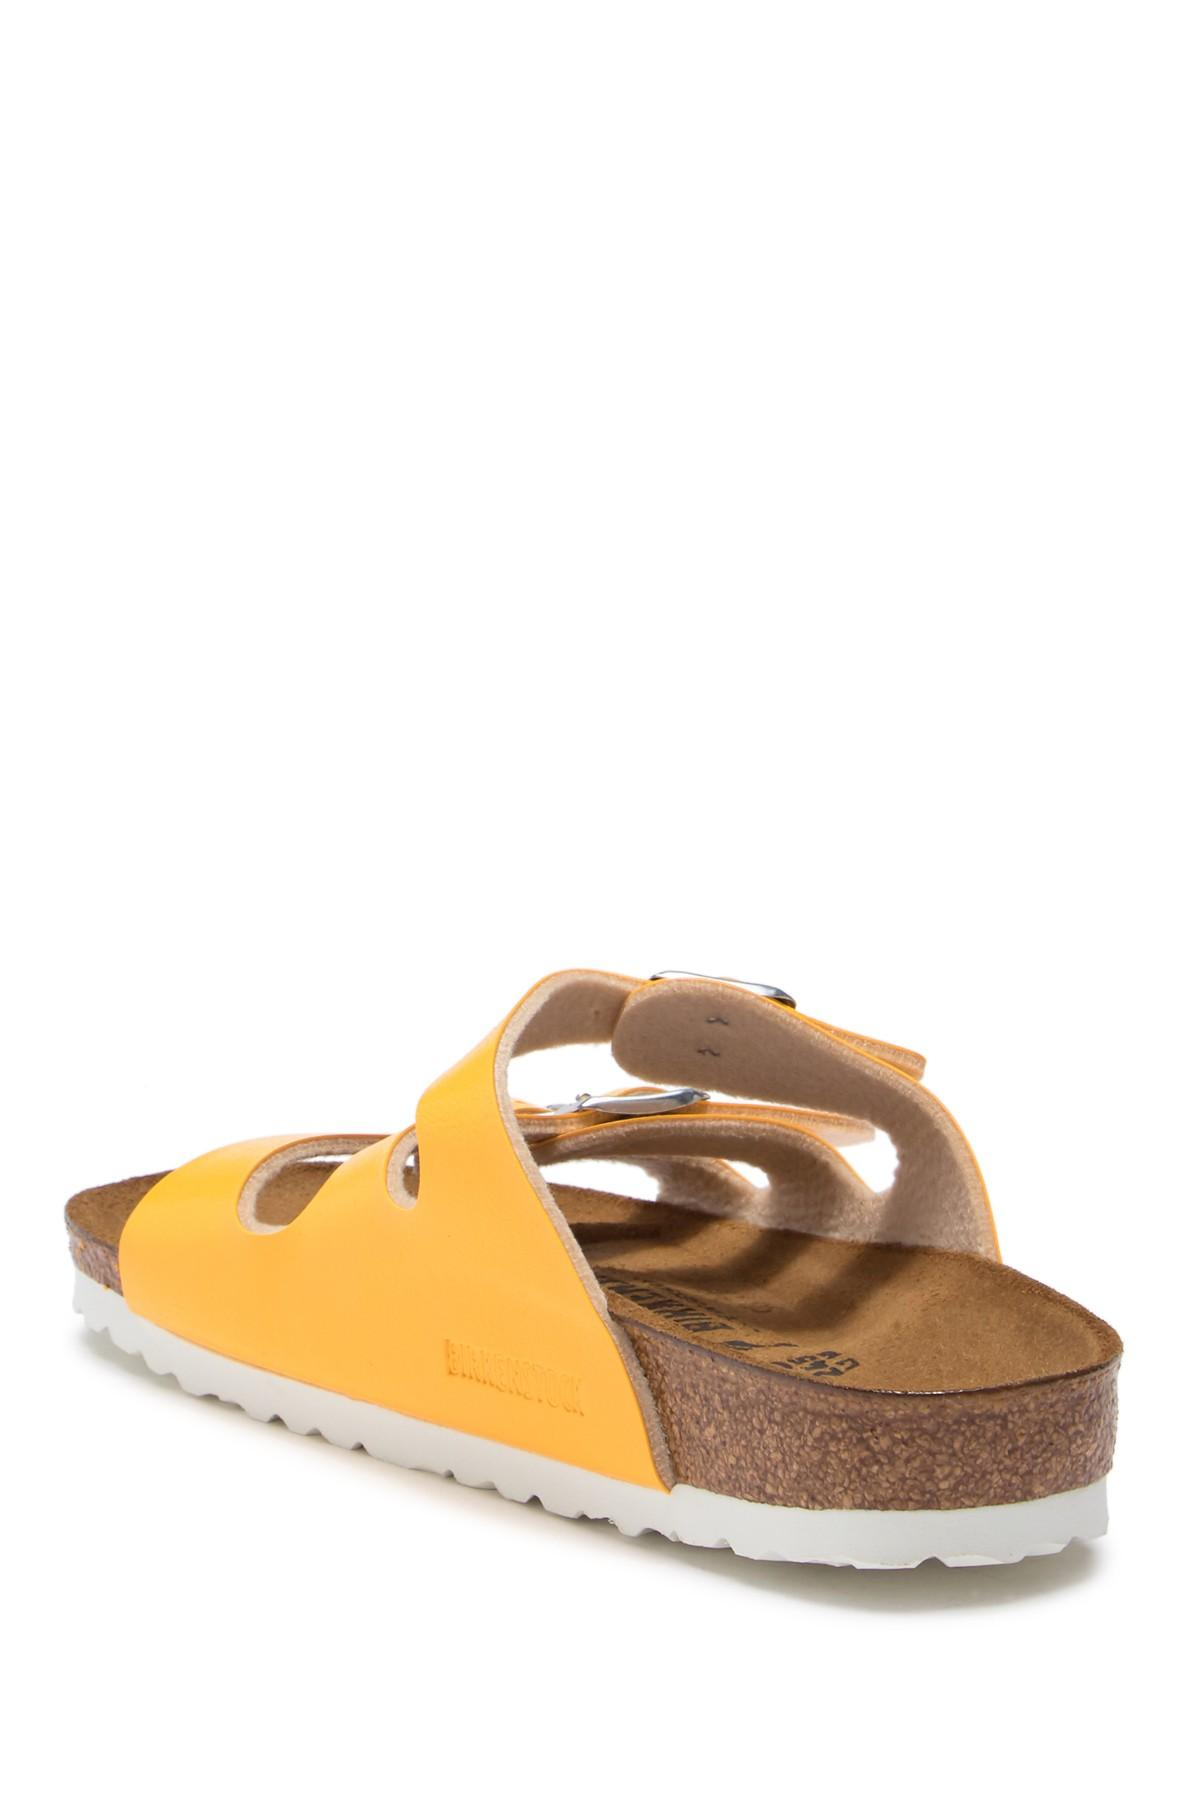 2661e925b3a Lyst - Birkenstock Florida Soft Footbed Sandal - Discontinued in Yellow